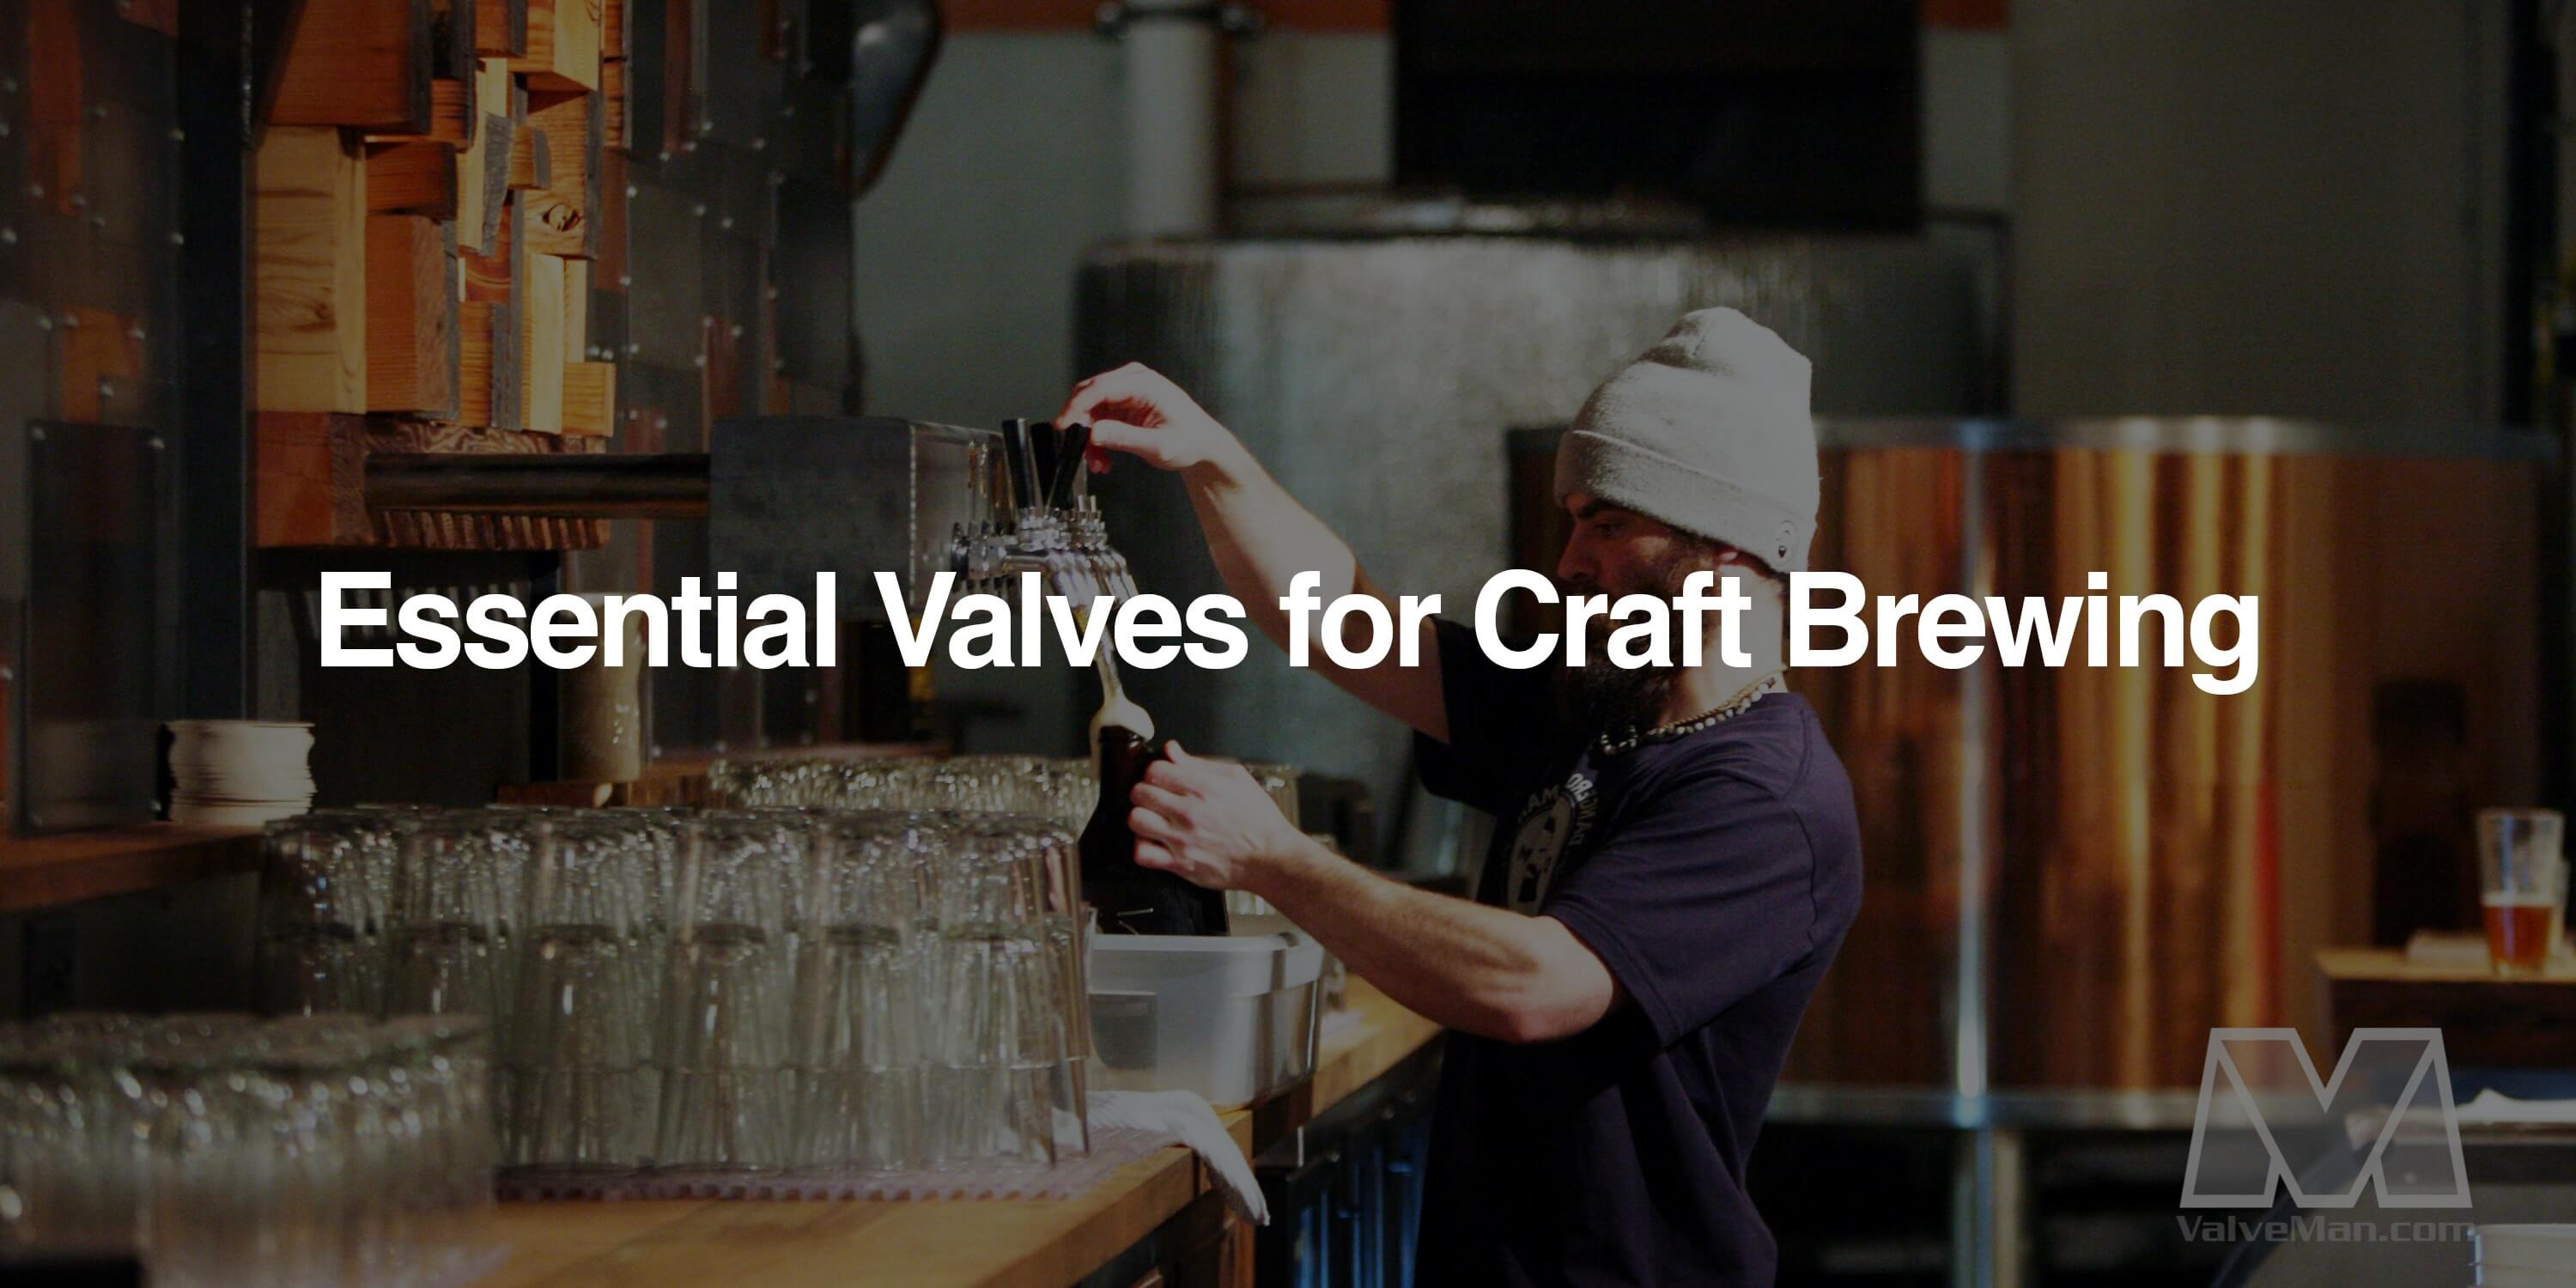 Craft Brewing - ValveMan.com